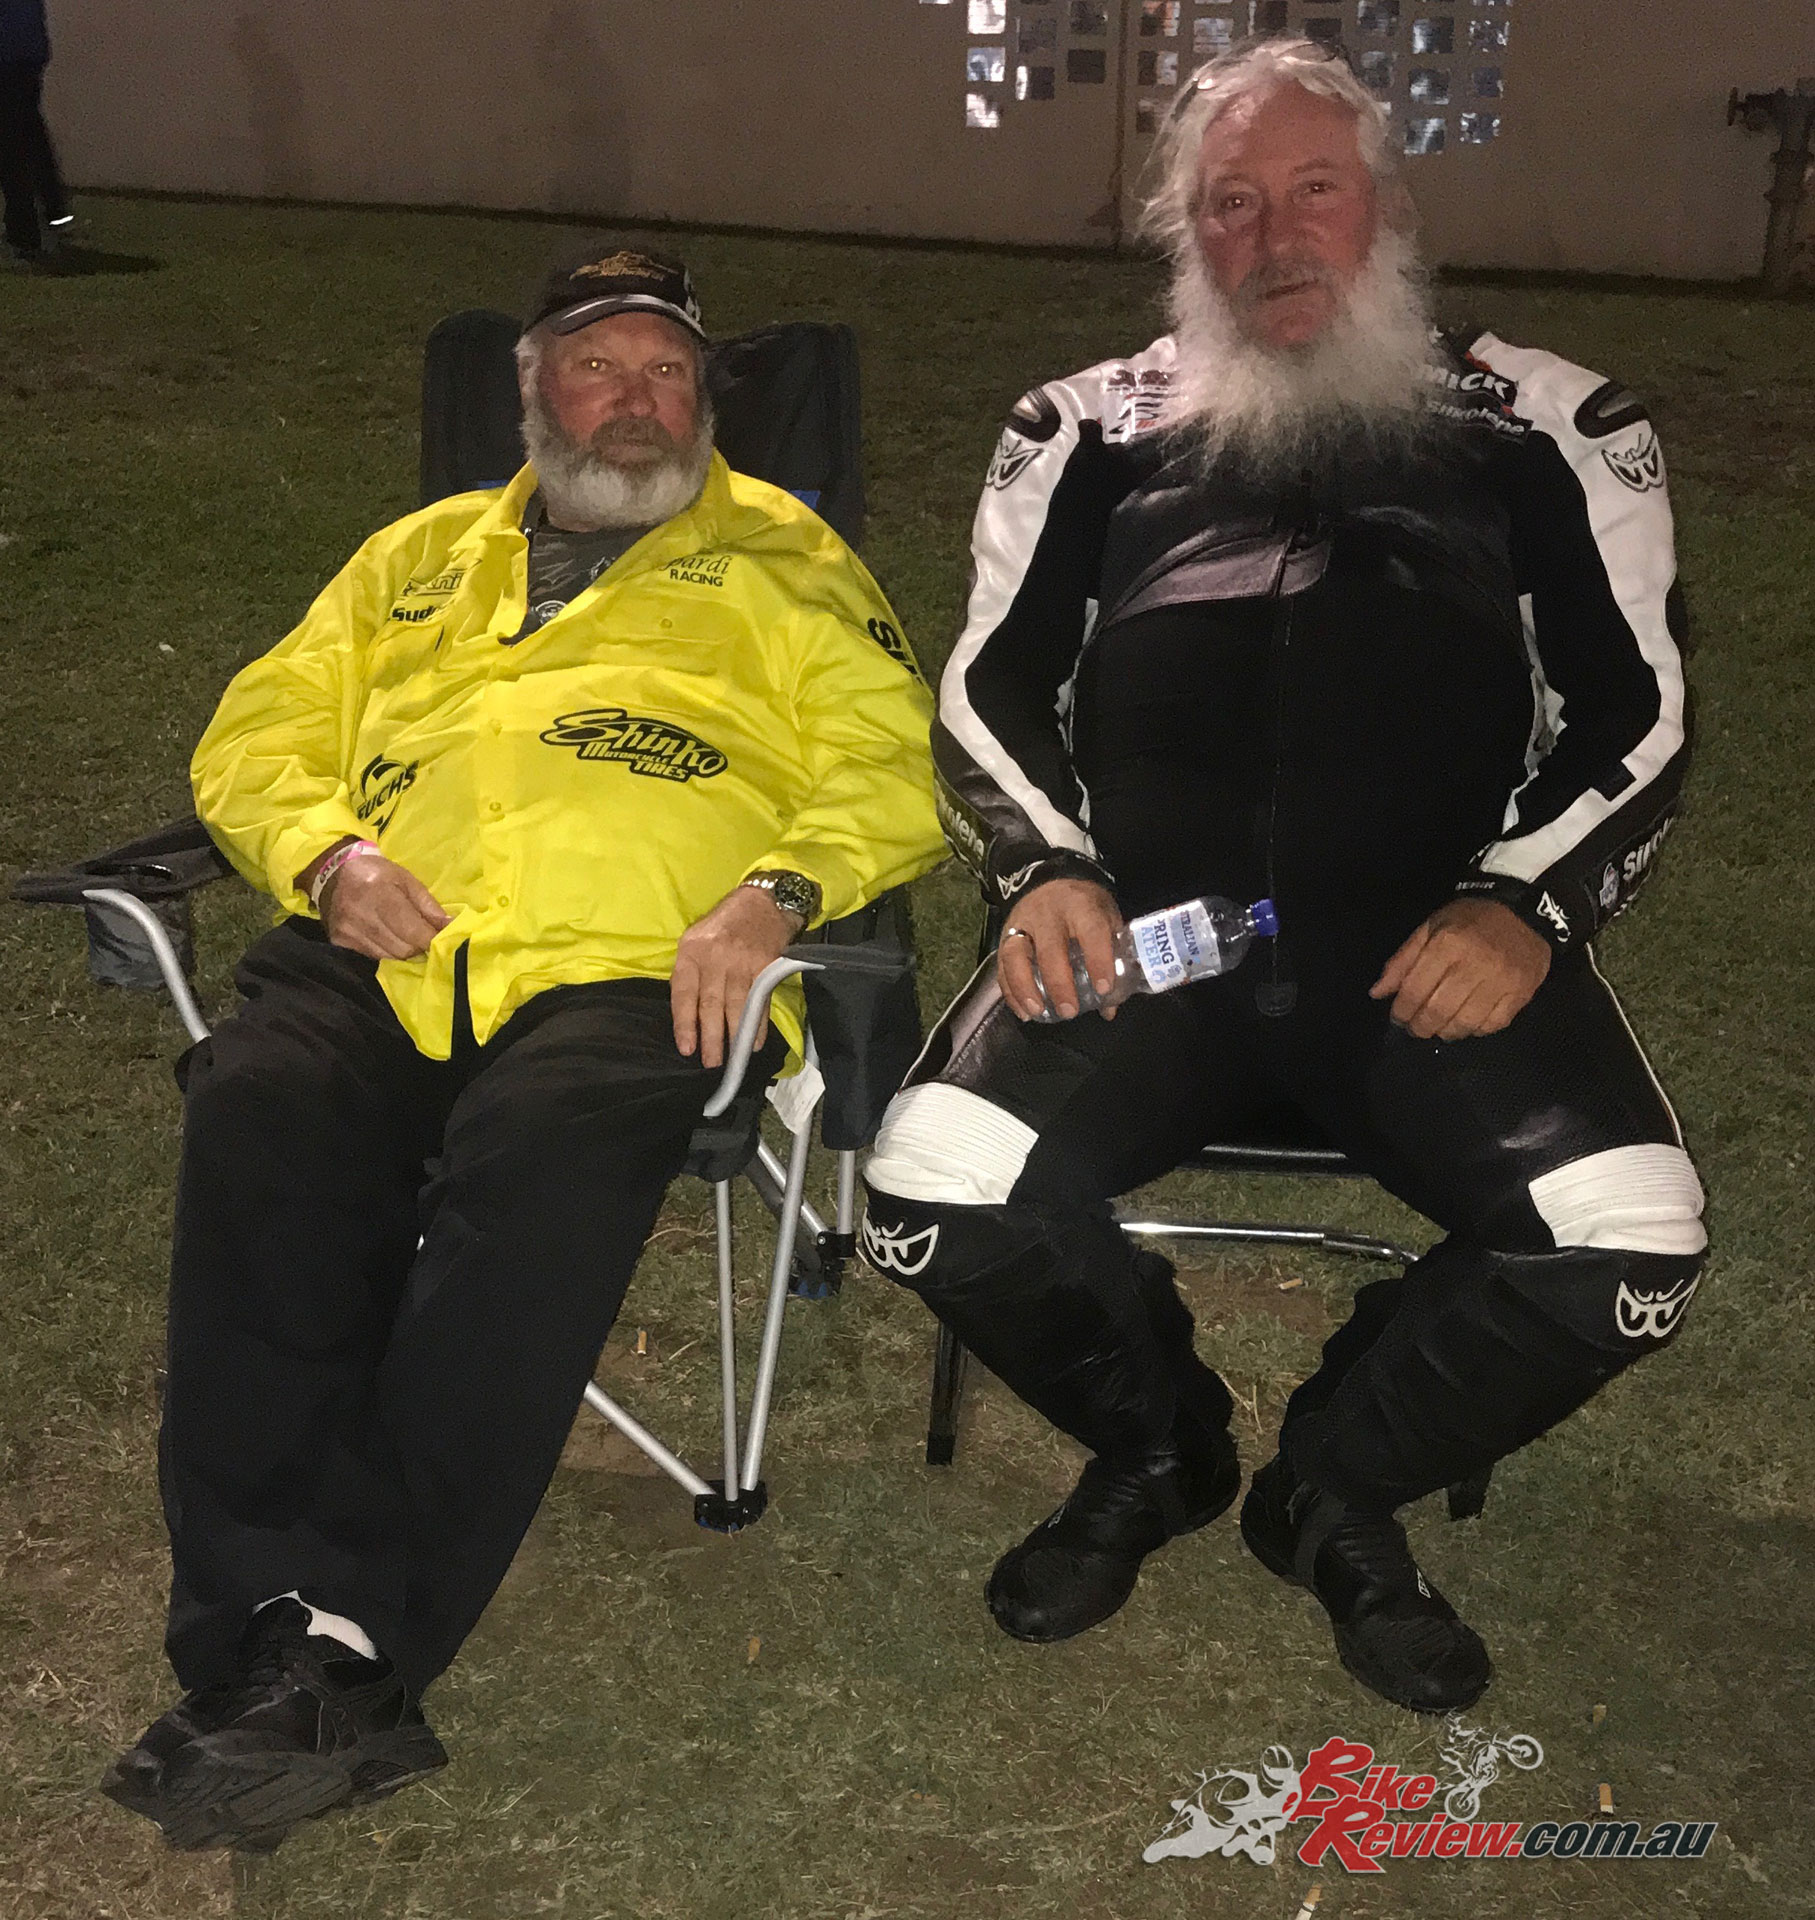 Relaxing with Athol Williams before the first round of eliminations late on Saturday night.